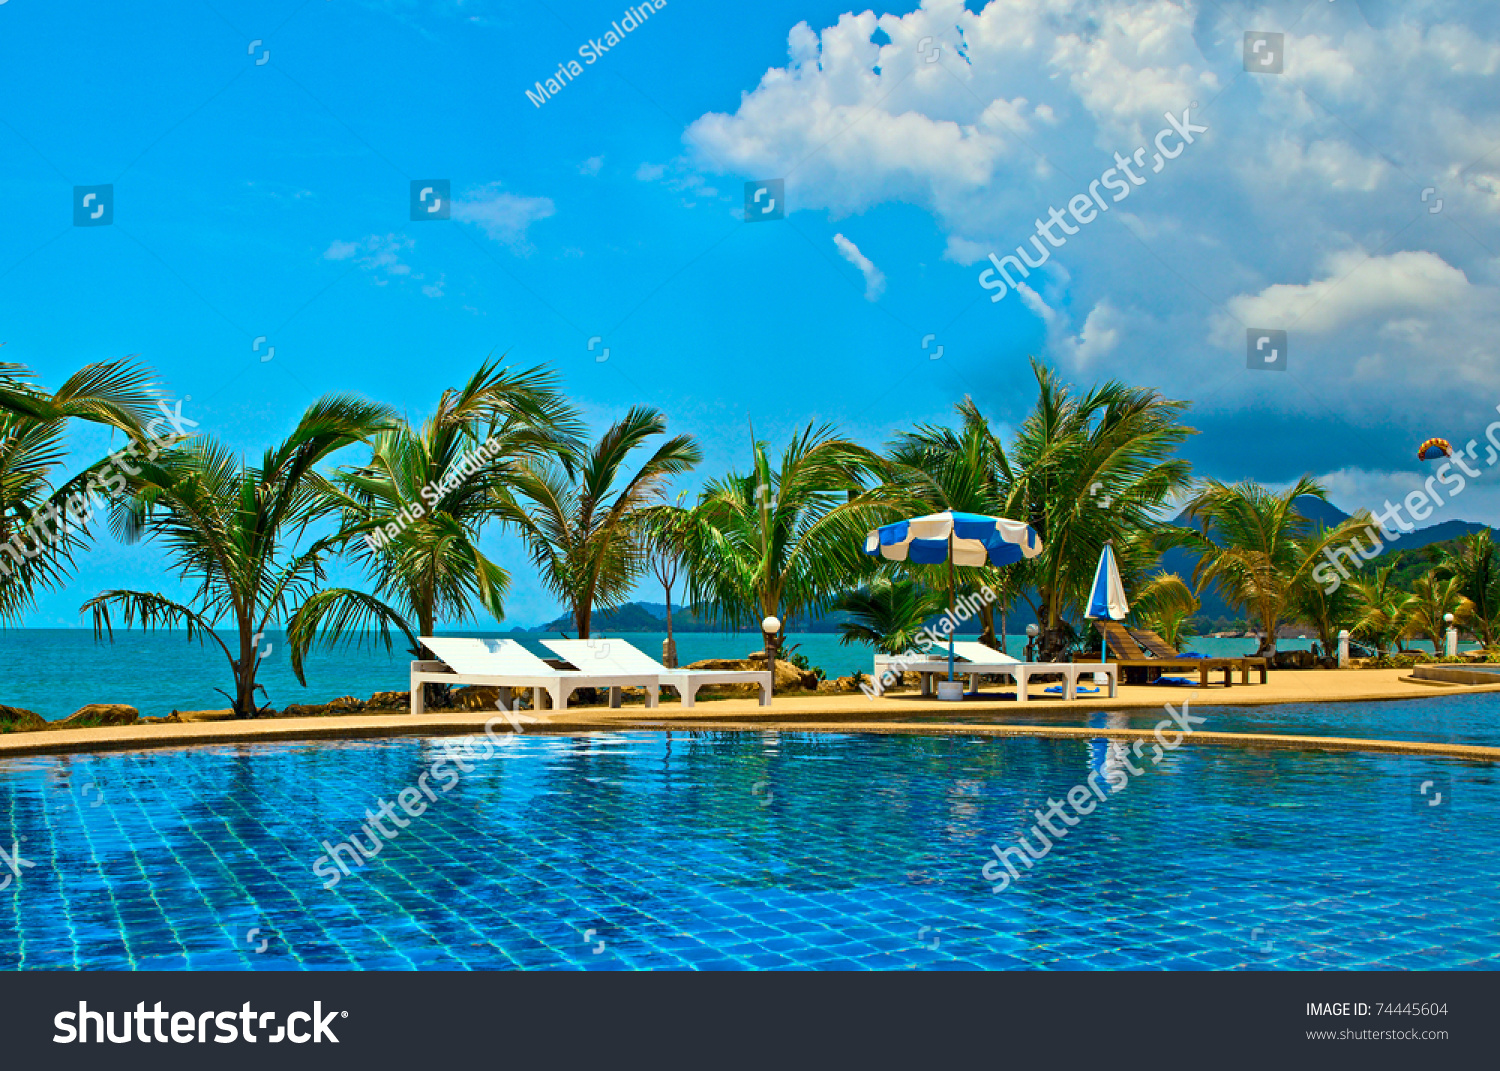 Swimming Pool In Luxury Resort Near The Sea Stock Photo 74445604 Shutterstock